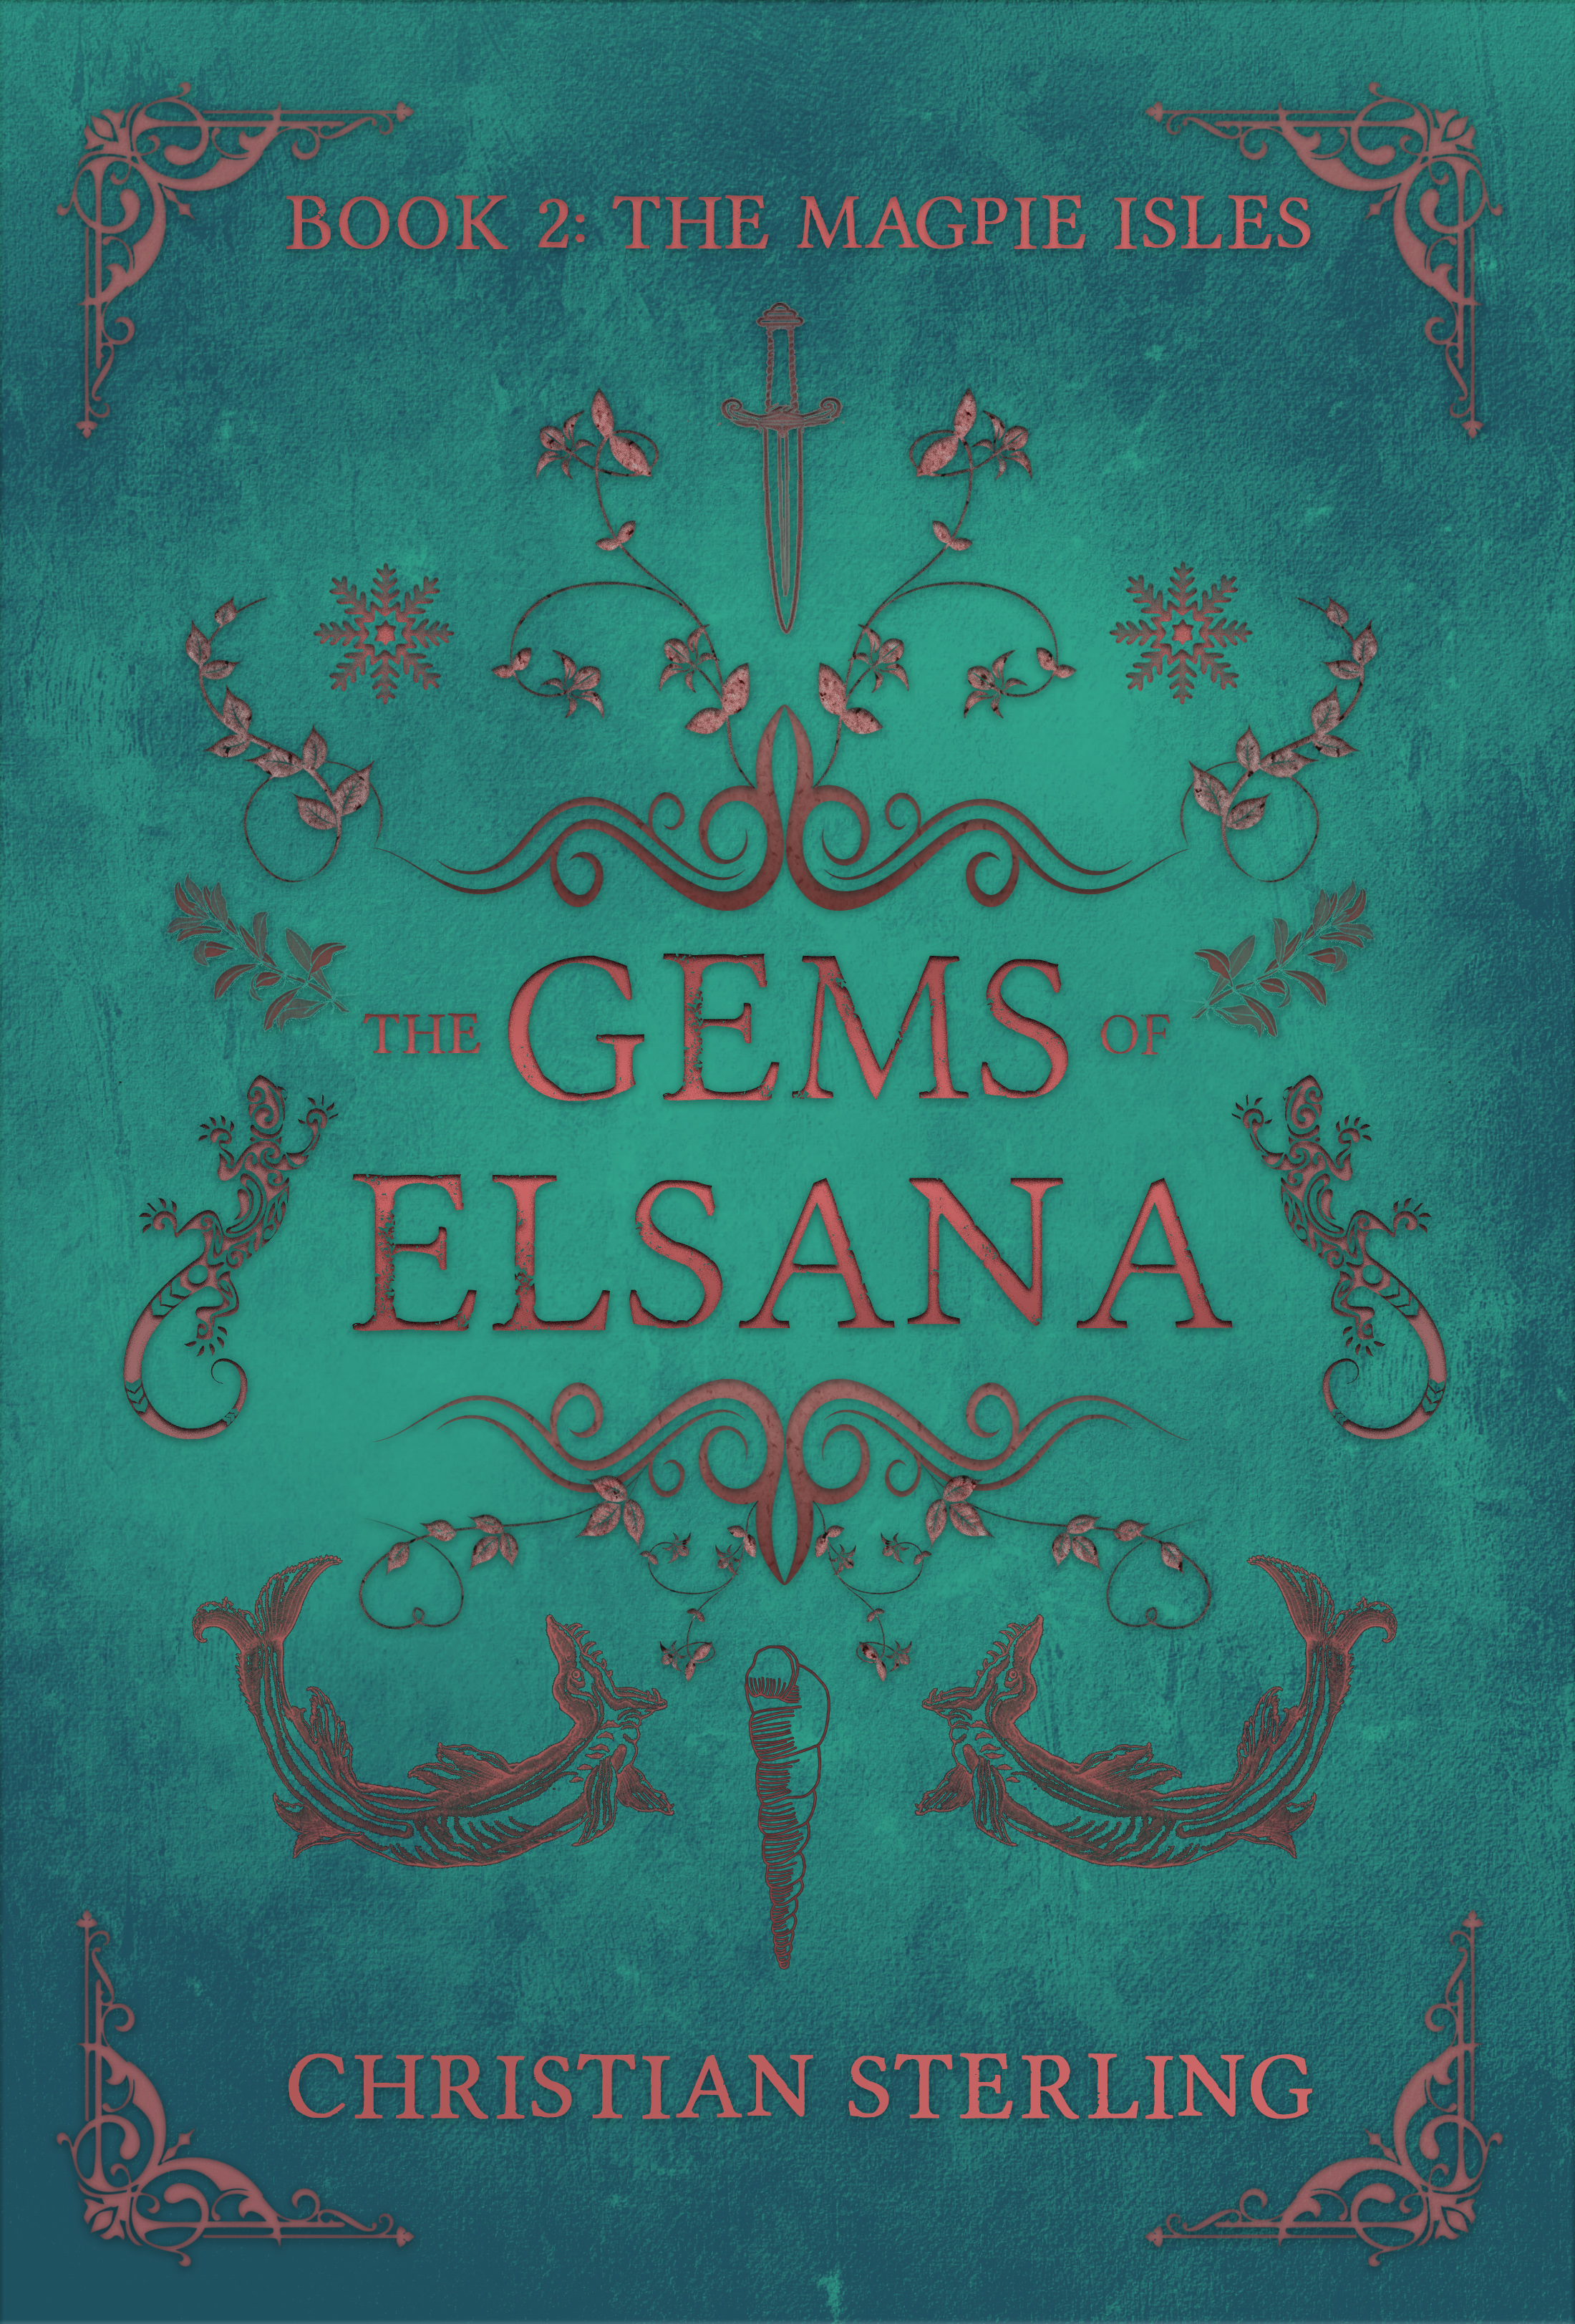 [PDF] [EPUB] The Magpie Isles (The Gems of Elsana #2) Download by Christian Sterling